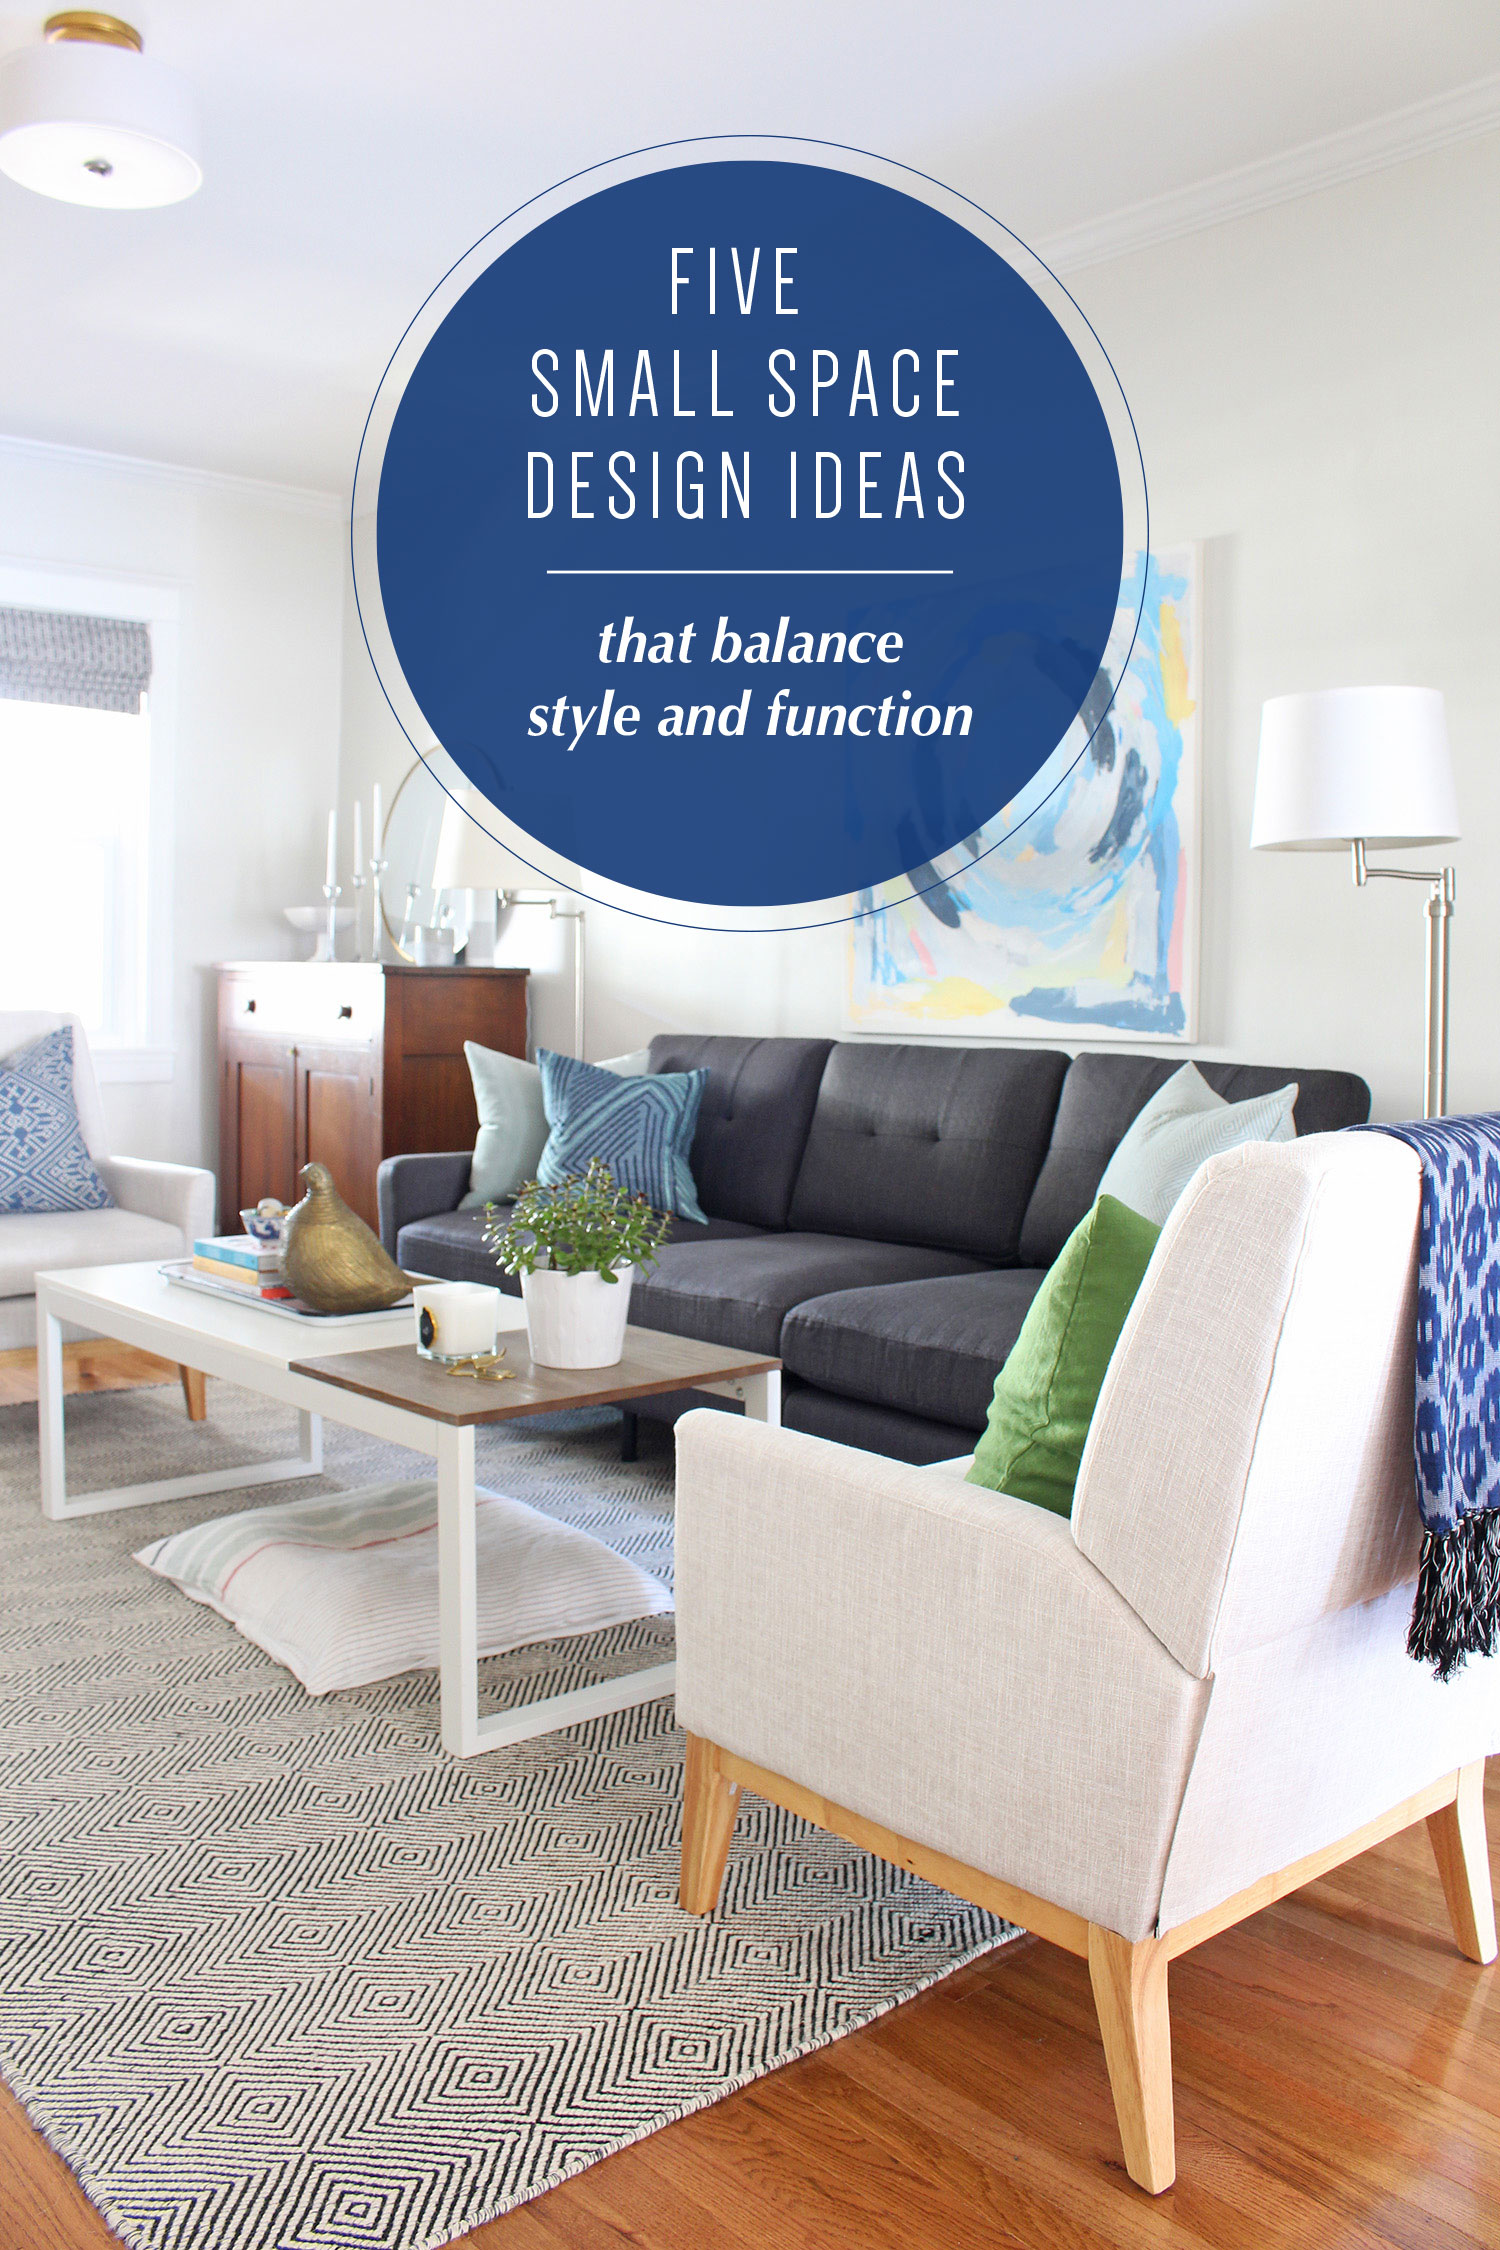 Taking a look back at the top 10 blog posts for Mix & Match Design Company of 2018! Come see what was popular in interior decorating, design tips, e-design projects, and more. One of the posts that made the list? This post featuring five small space ideas that balance function and style!